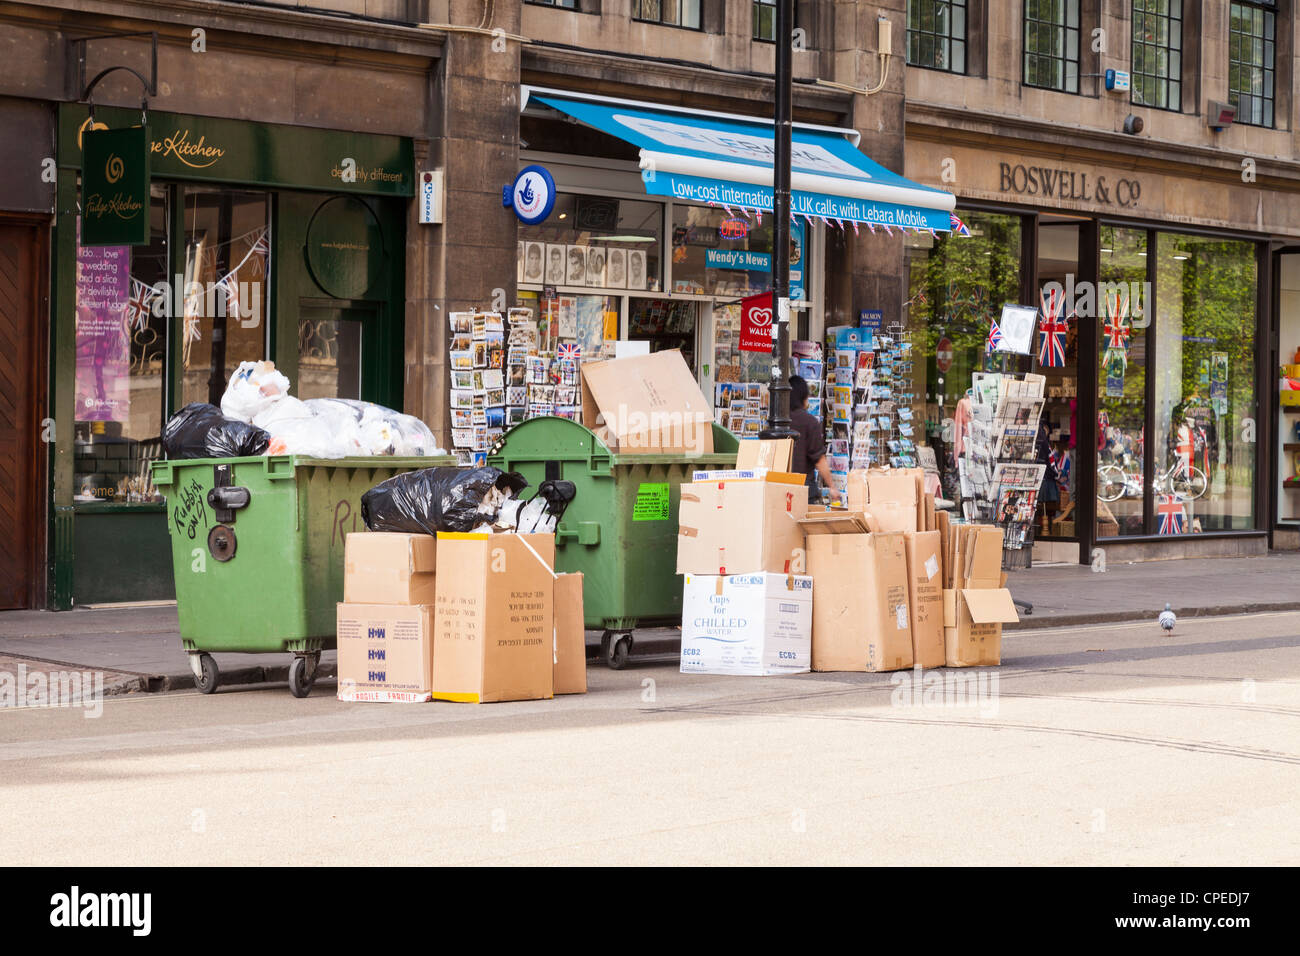 Two skips and several cartons of rubbish or garbage waiting at the kerb for collection, in Broad Street, Oxford, - Stock Image